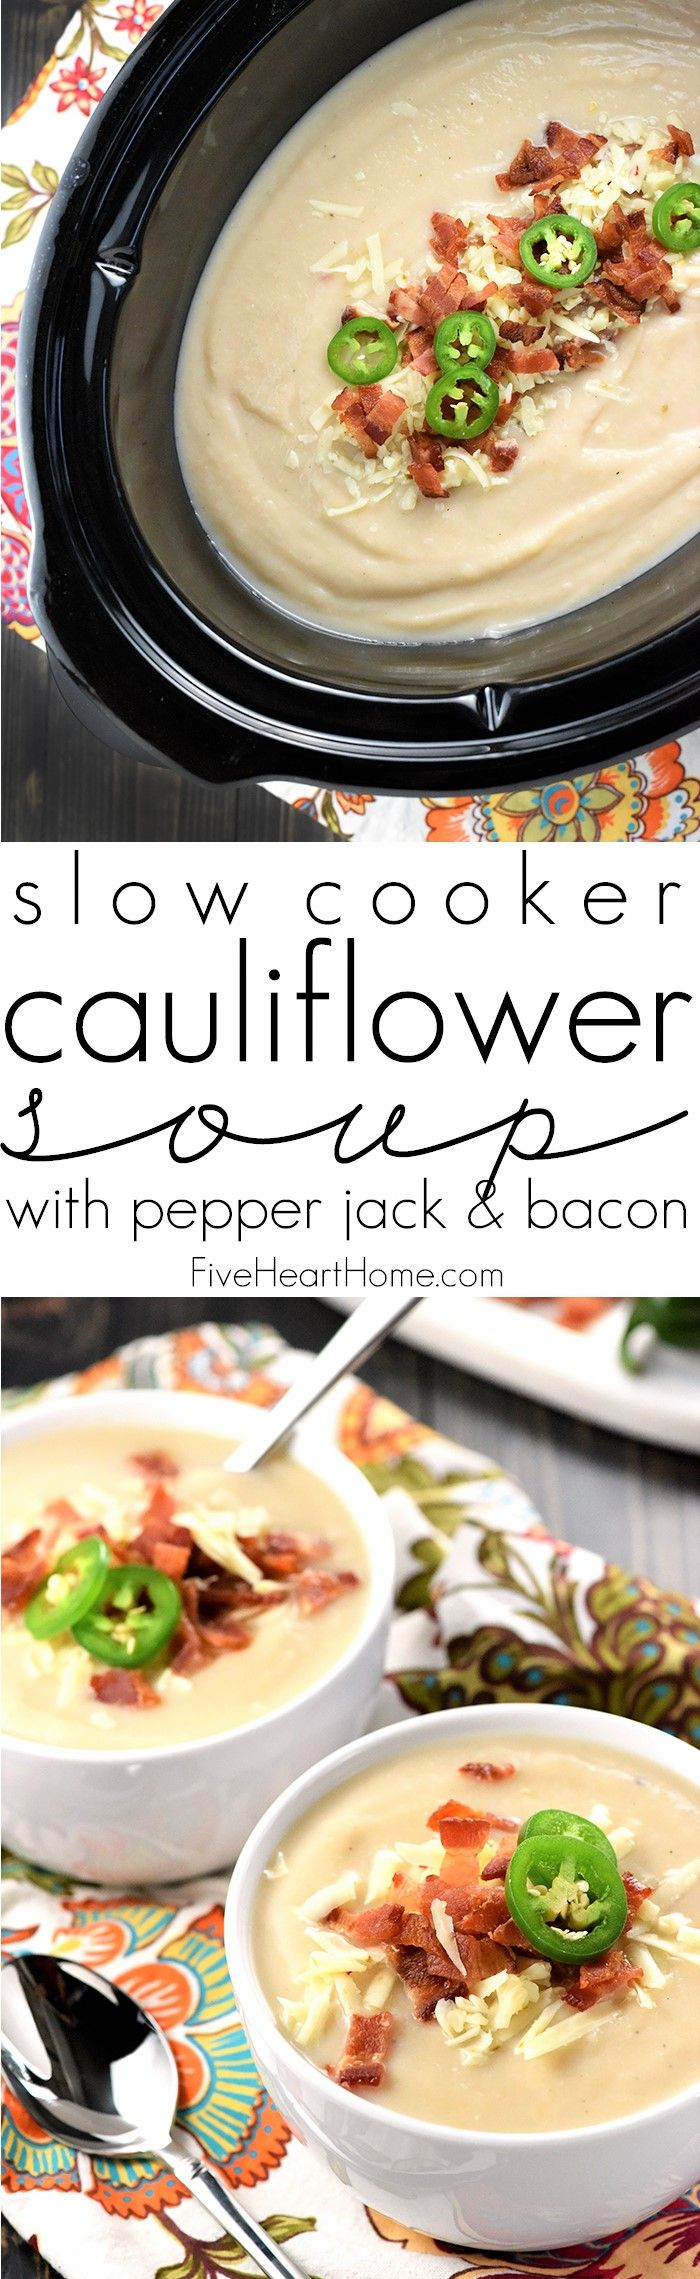 Slow Cooker Cauliflower Soup with Pepper Jack & Bacon